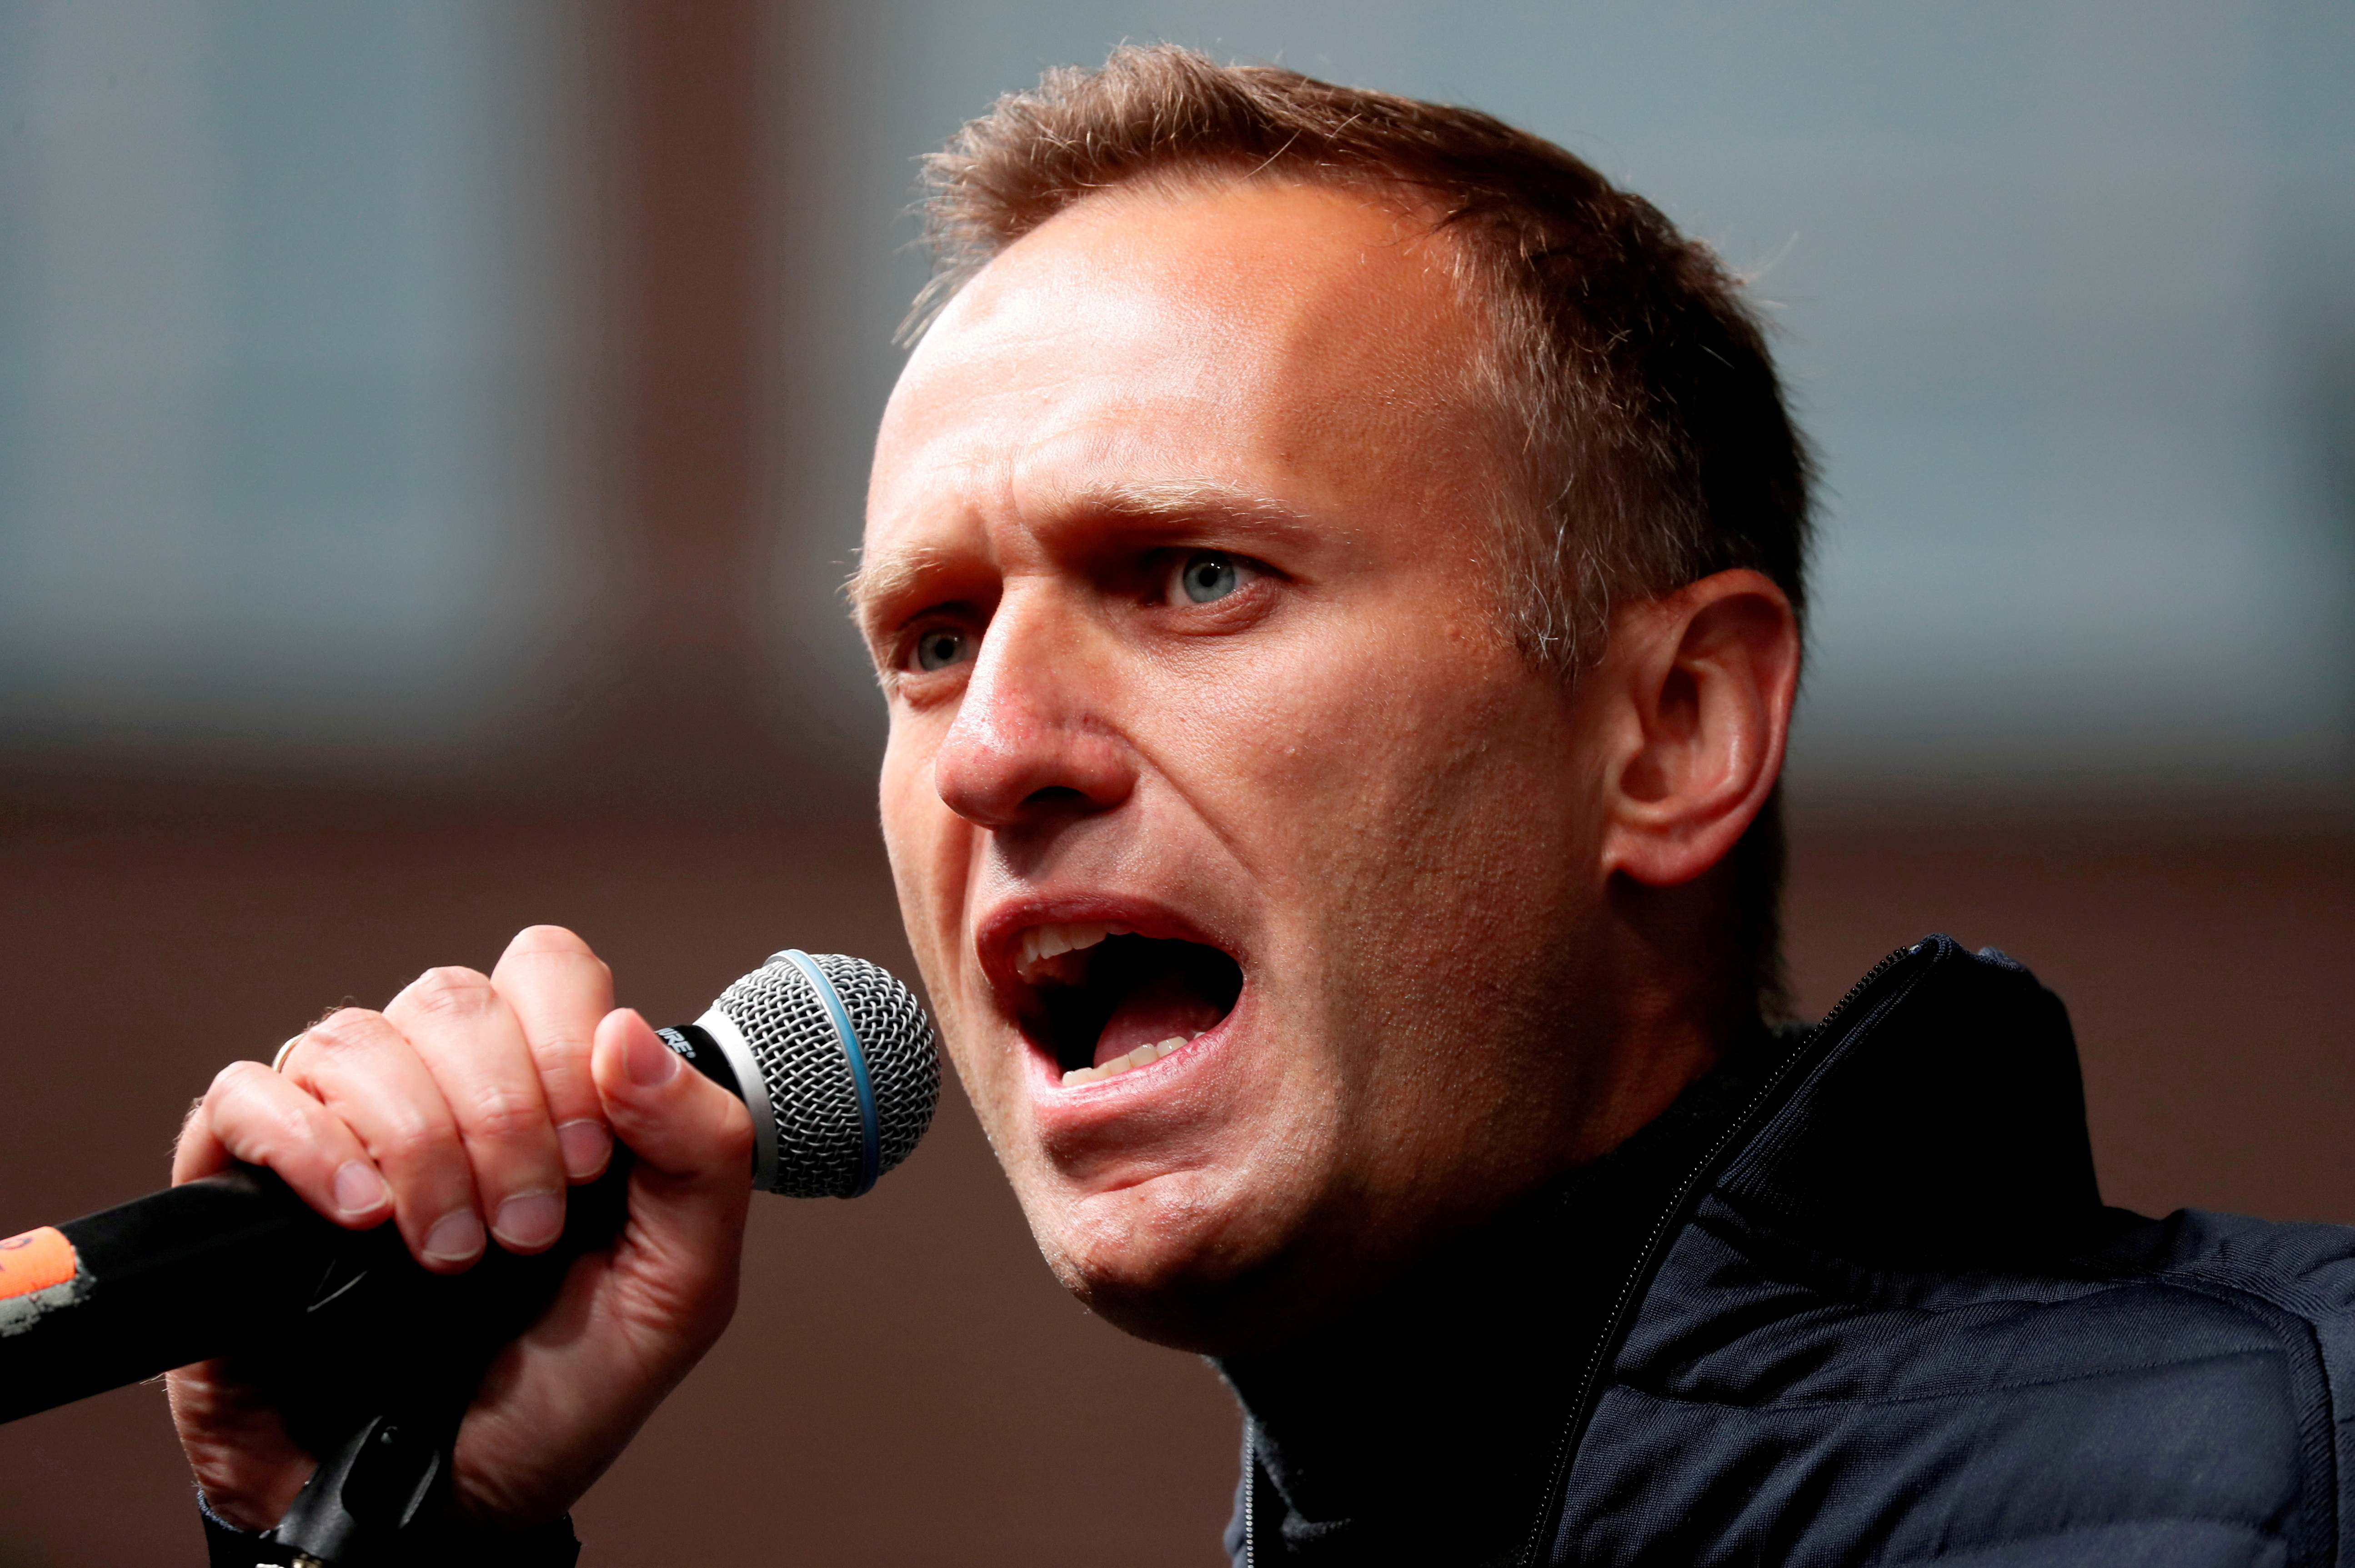 Russian opposition figure Alexei Navalny delivers a speech during a rally to demand the release of jailed protesters, who were detained during opposition demonstrations for fair elections, in Moscow, Russia September 29, 2019. REUTERS/Shamil Zhumatov/File Photo